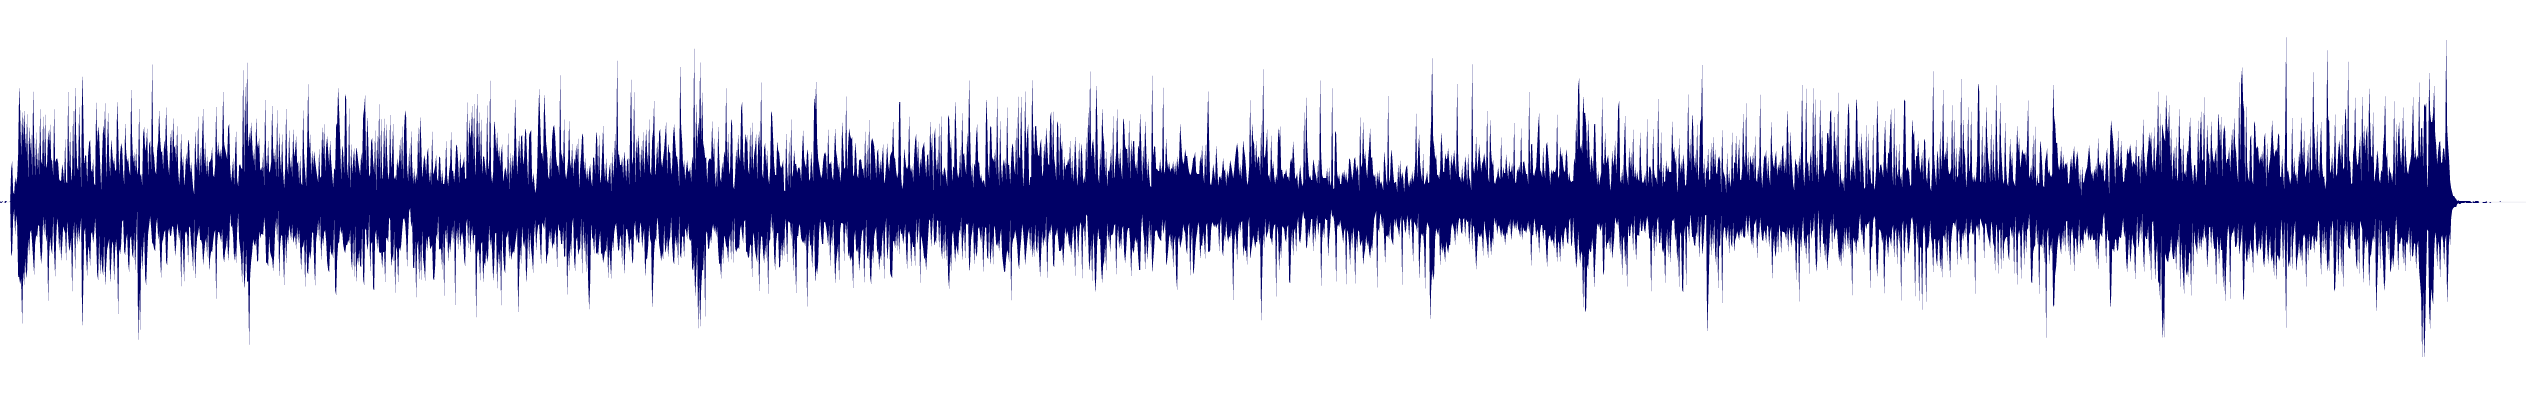 waveform of track #101355